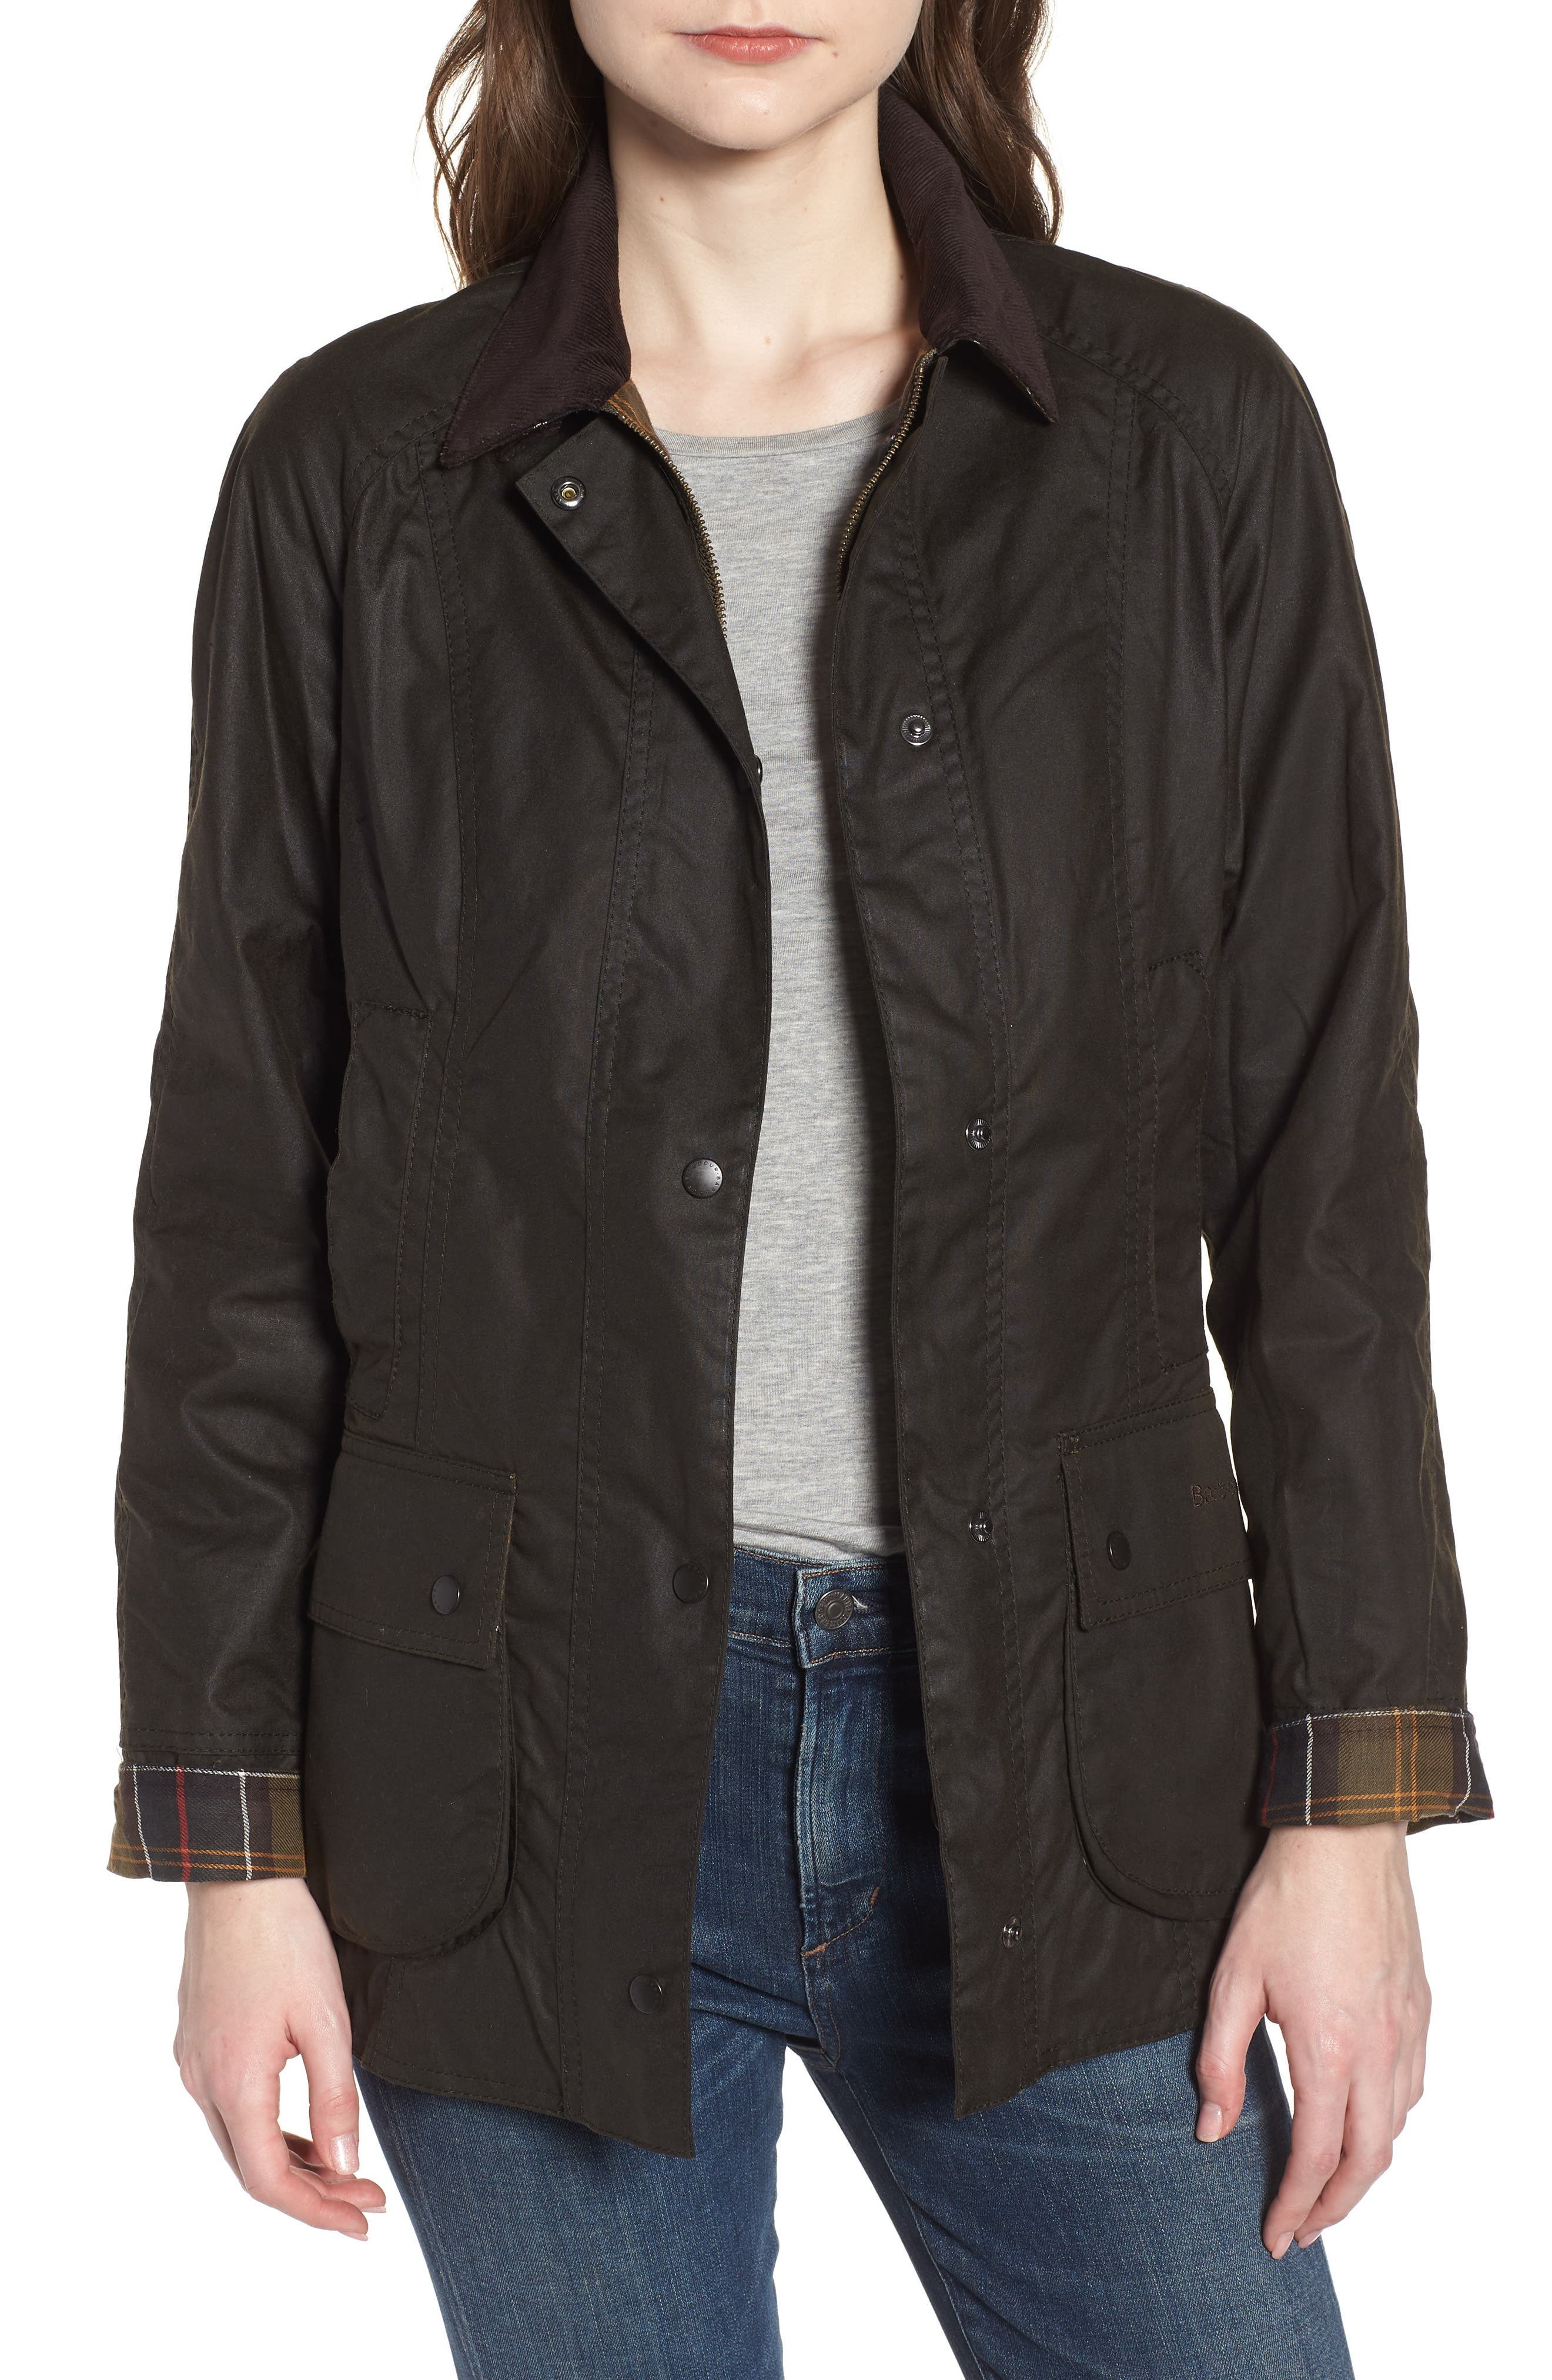 Beadnell Waxed Cotton Jacket,                         Main,                         color, Olive